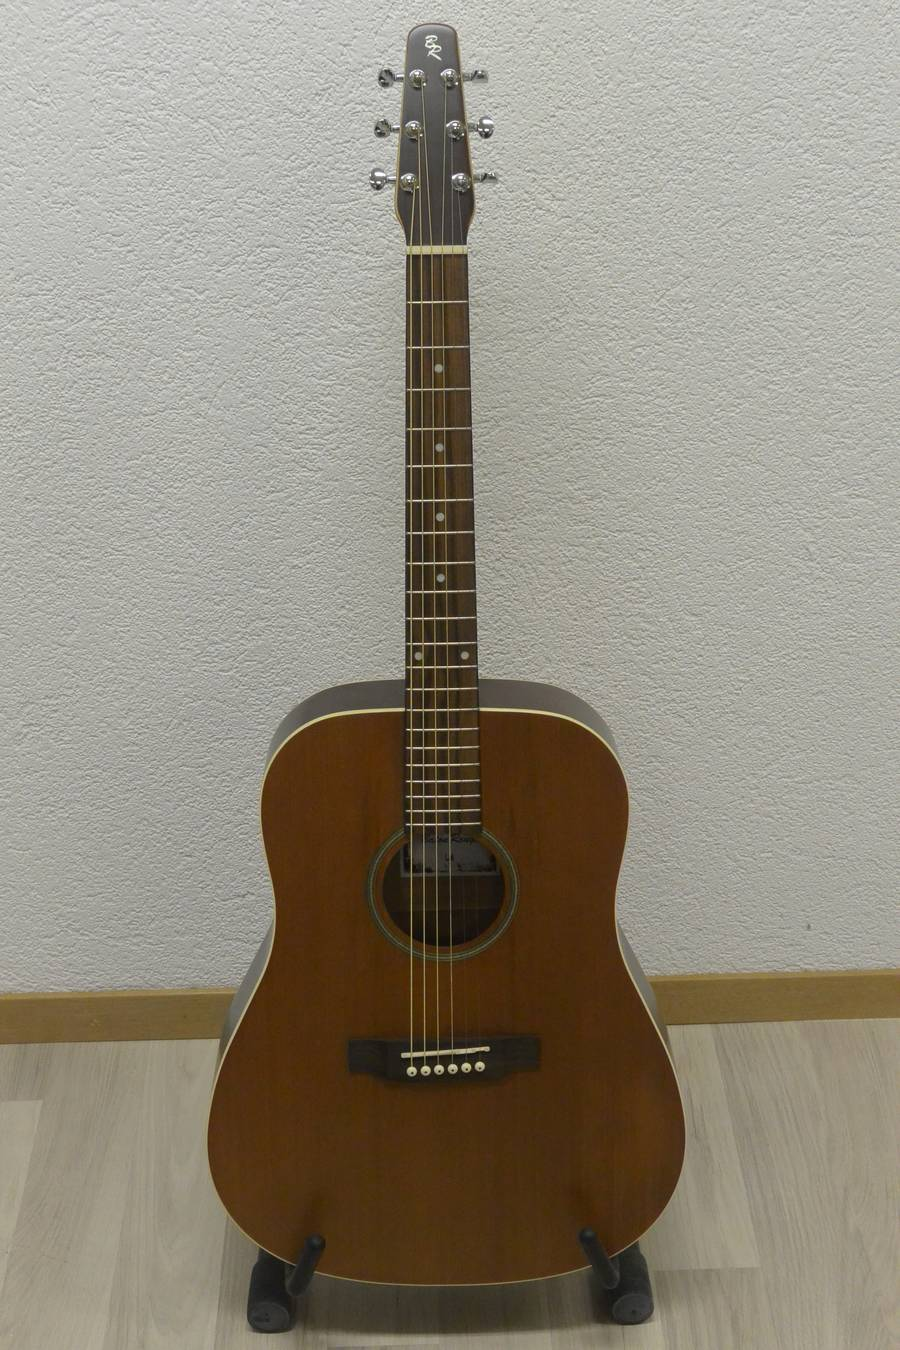 guitare acoustique baton rouge L6 frs. 345.00